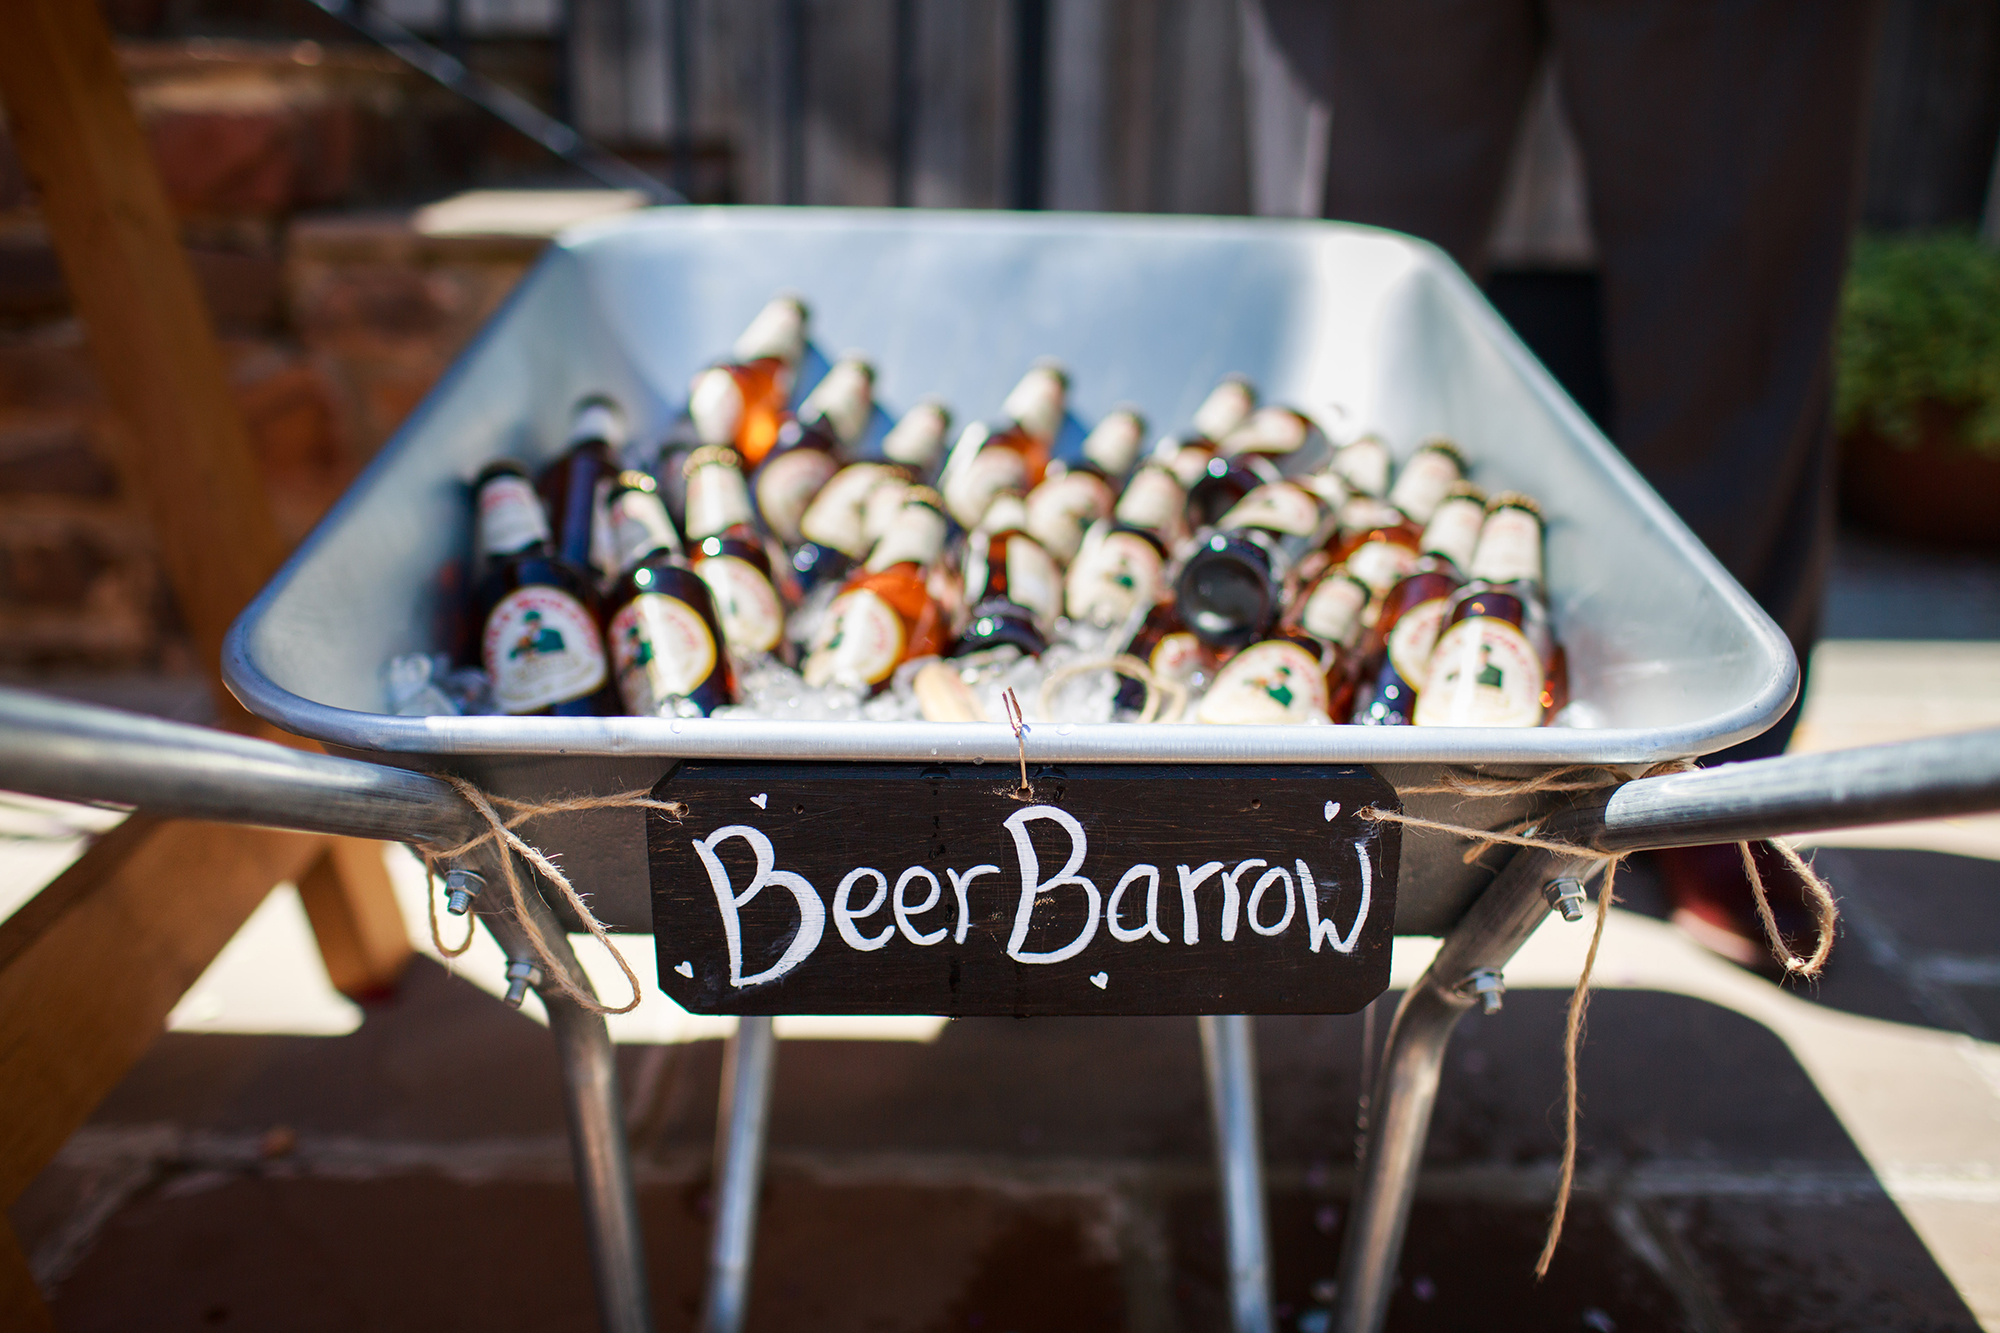 Beer Barrow filled with bottle and ice